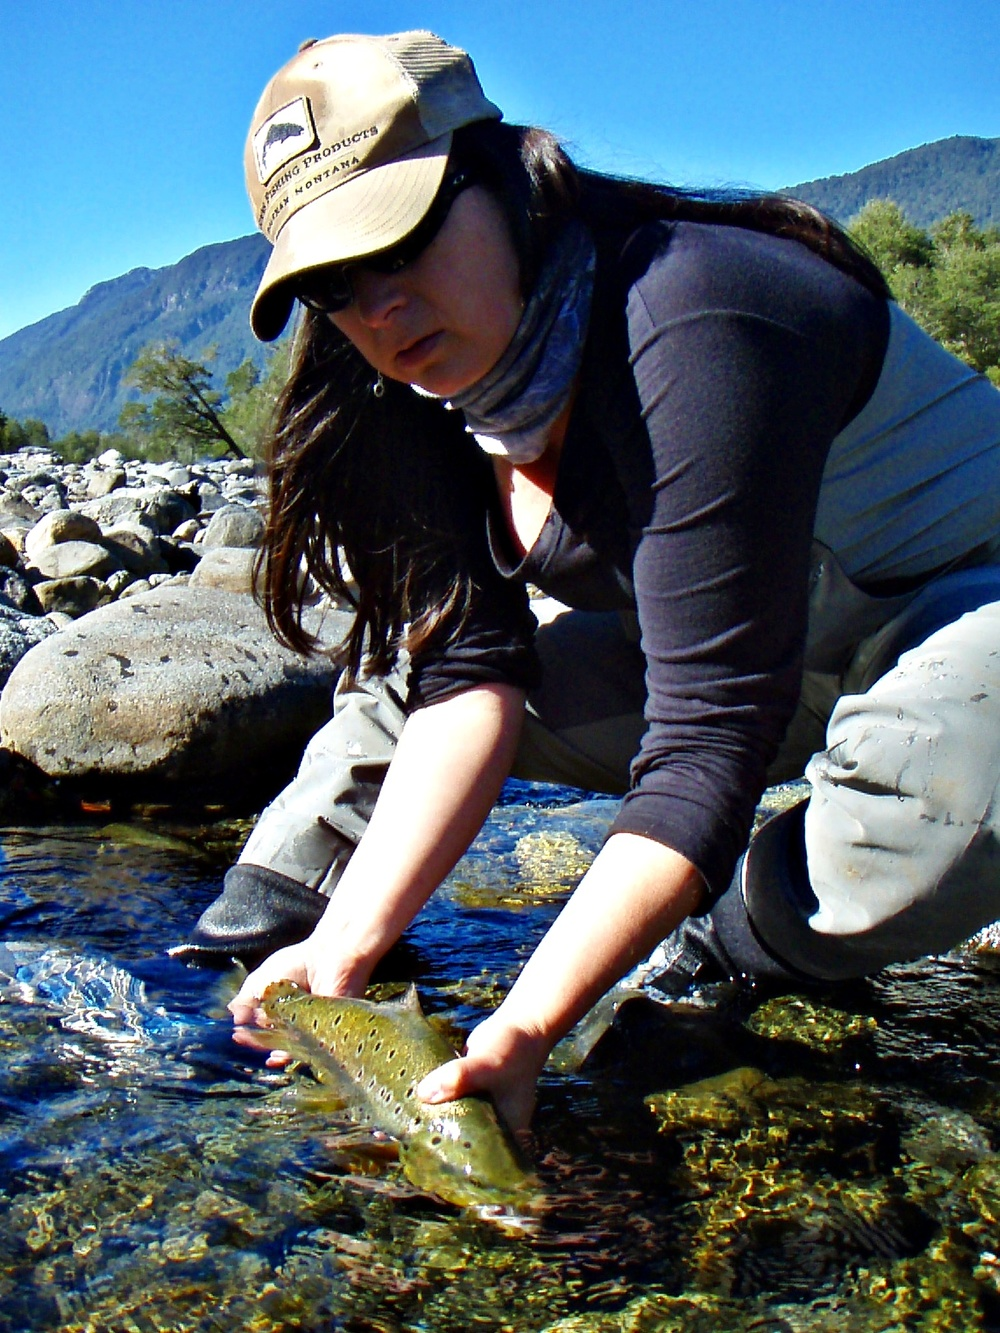 Chile Fly Fishing   Fly Fishing Chile   Chile Fishing Guide   Patagonia Trout Adventures  